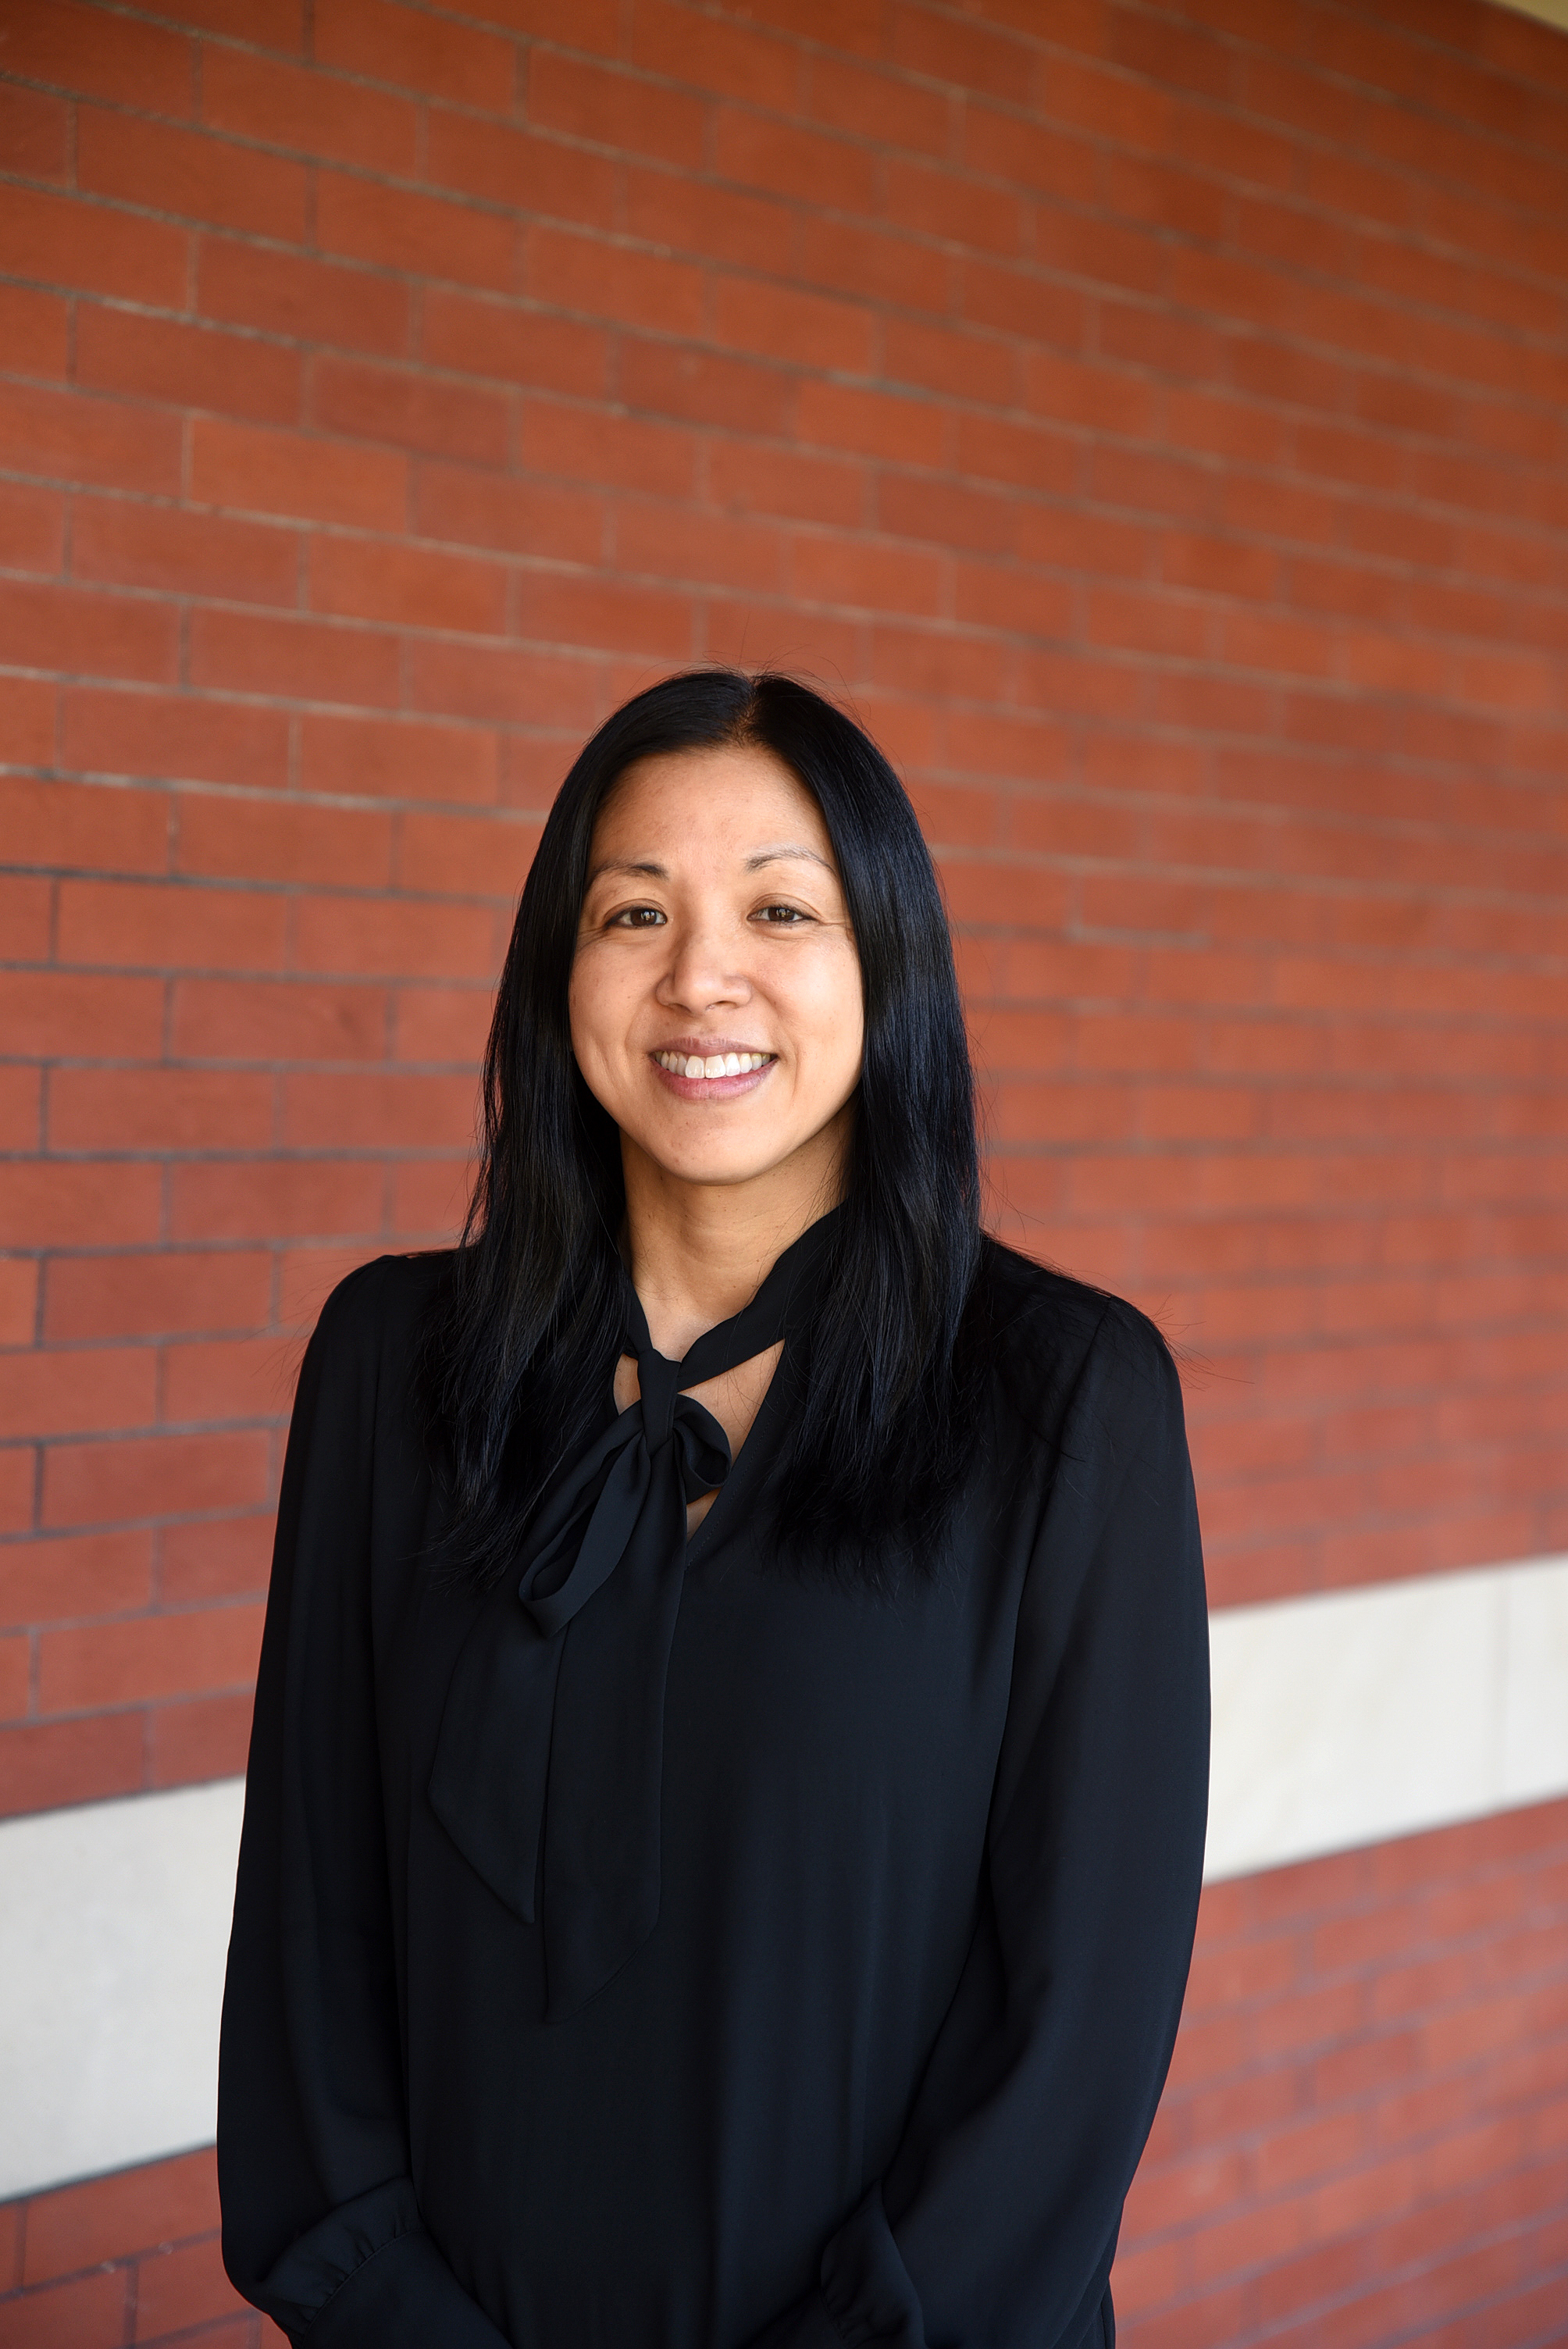 A picture of a smiling asian woman with a black suit standing in the front of a red brick wall